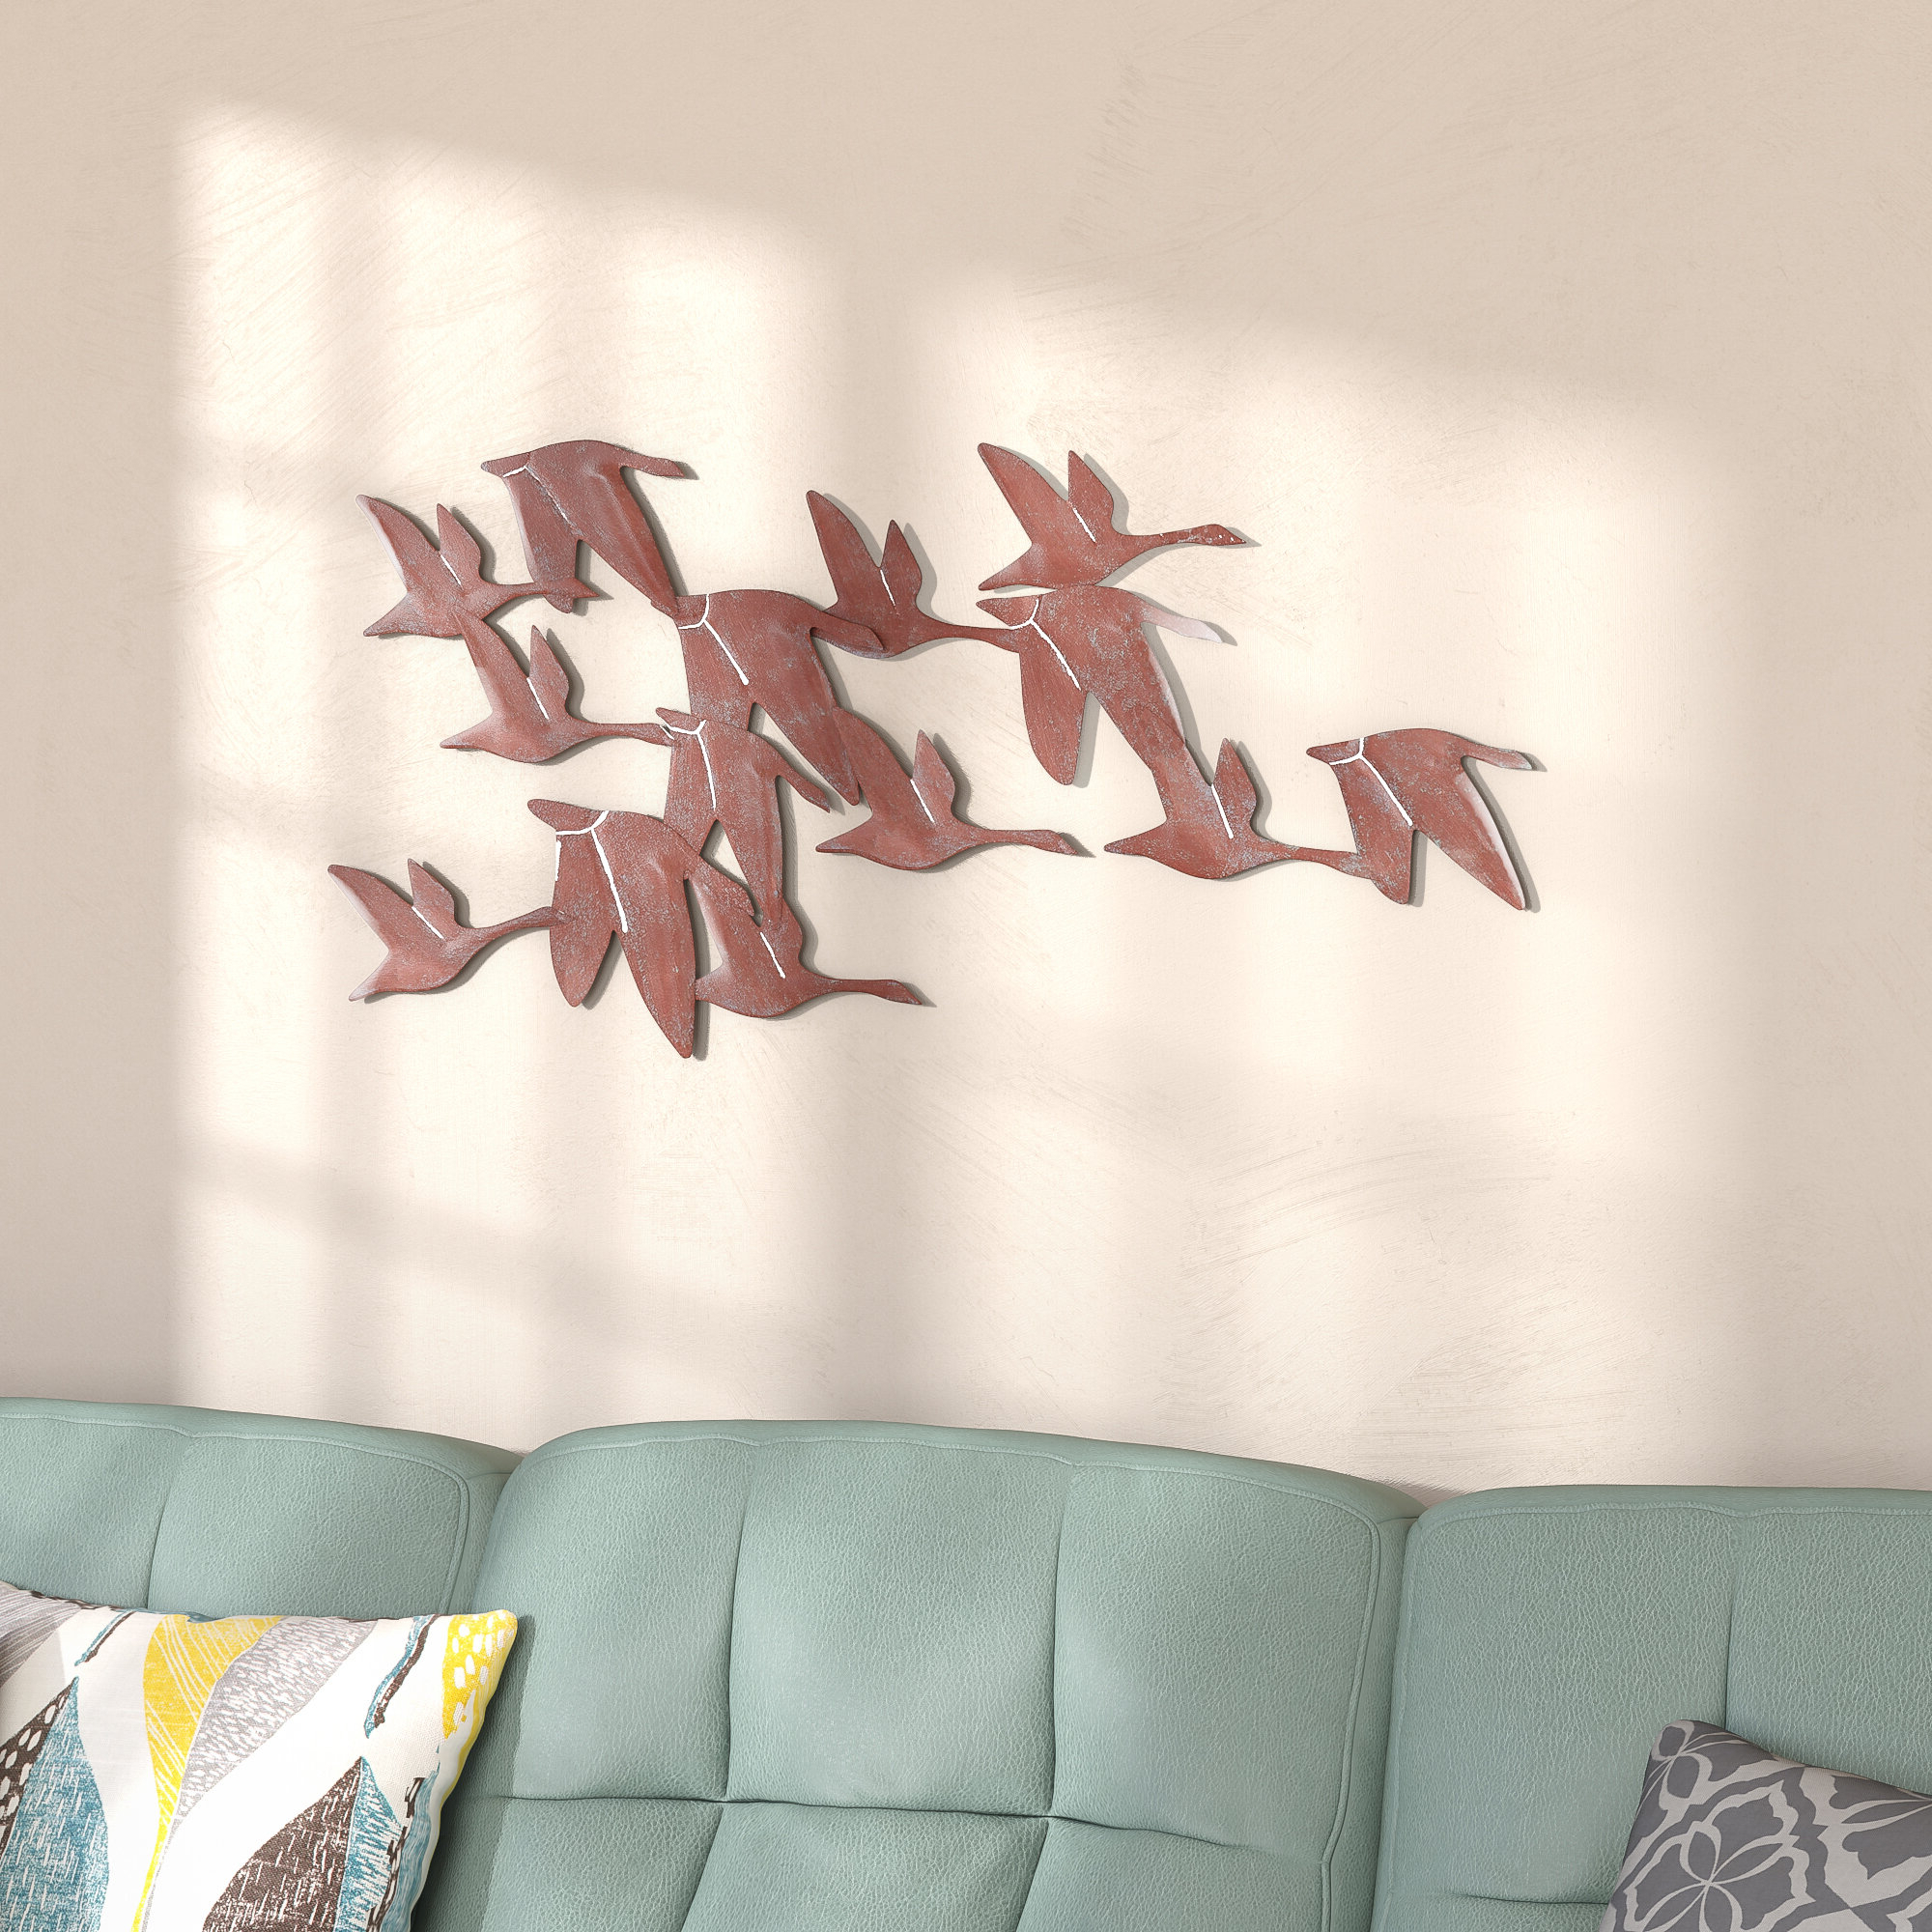 Trendy Rustic Flock Of Geese Wall Sculpture Flying Birds 3 D Metal Inside Copper Rustic Iron Wall Décor (View 10 of 20)